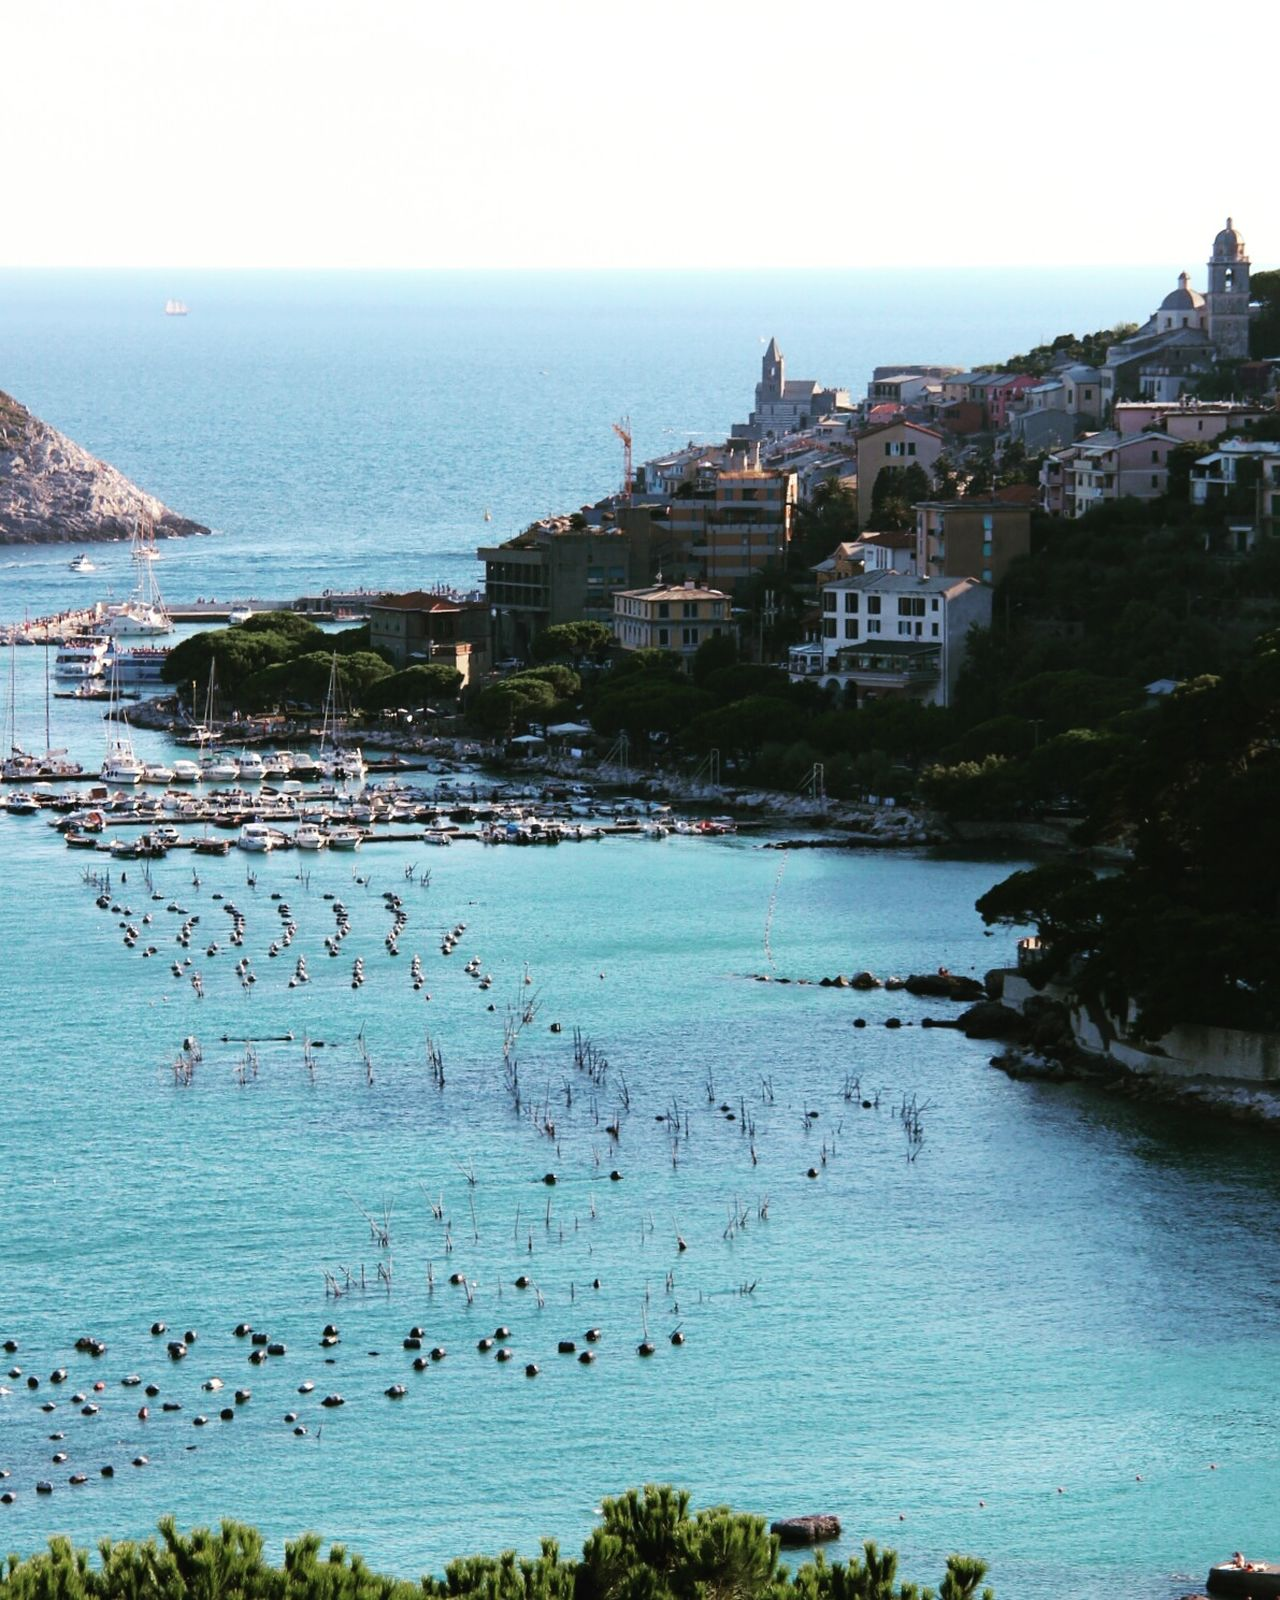 Liguria Italy Seaside Porto Venere Boats Seaside Village